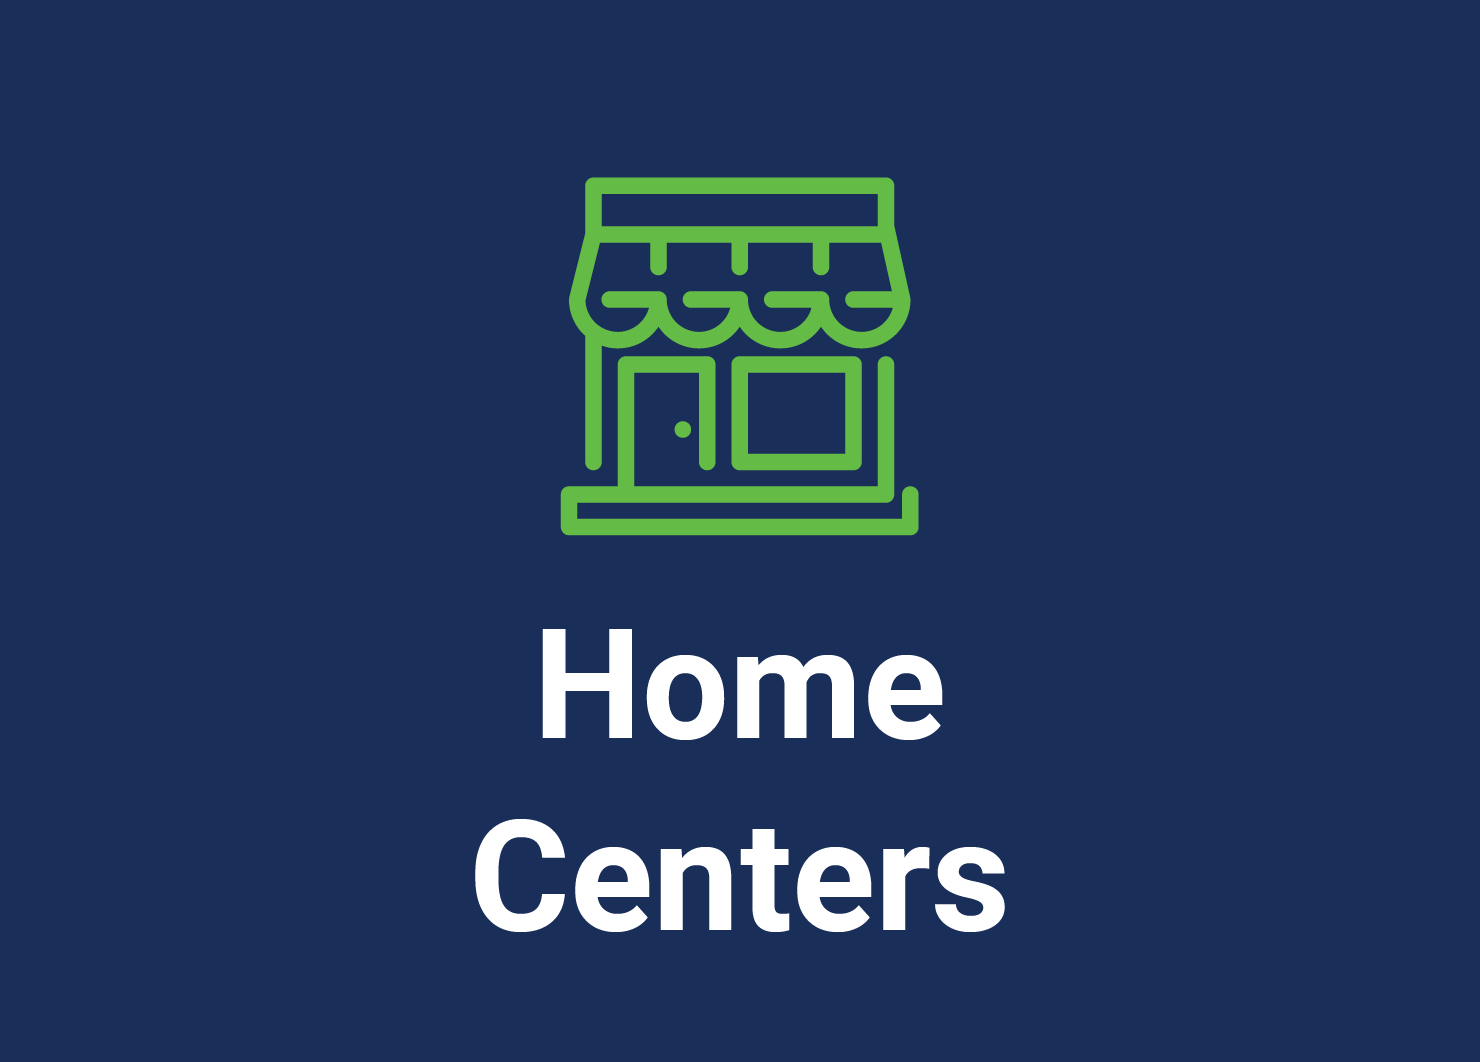 Home Centers